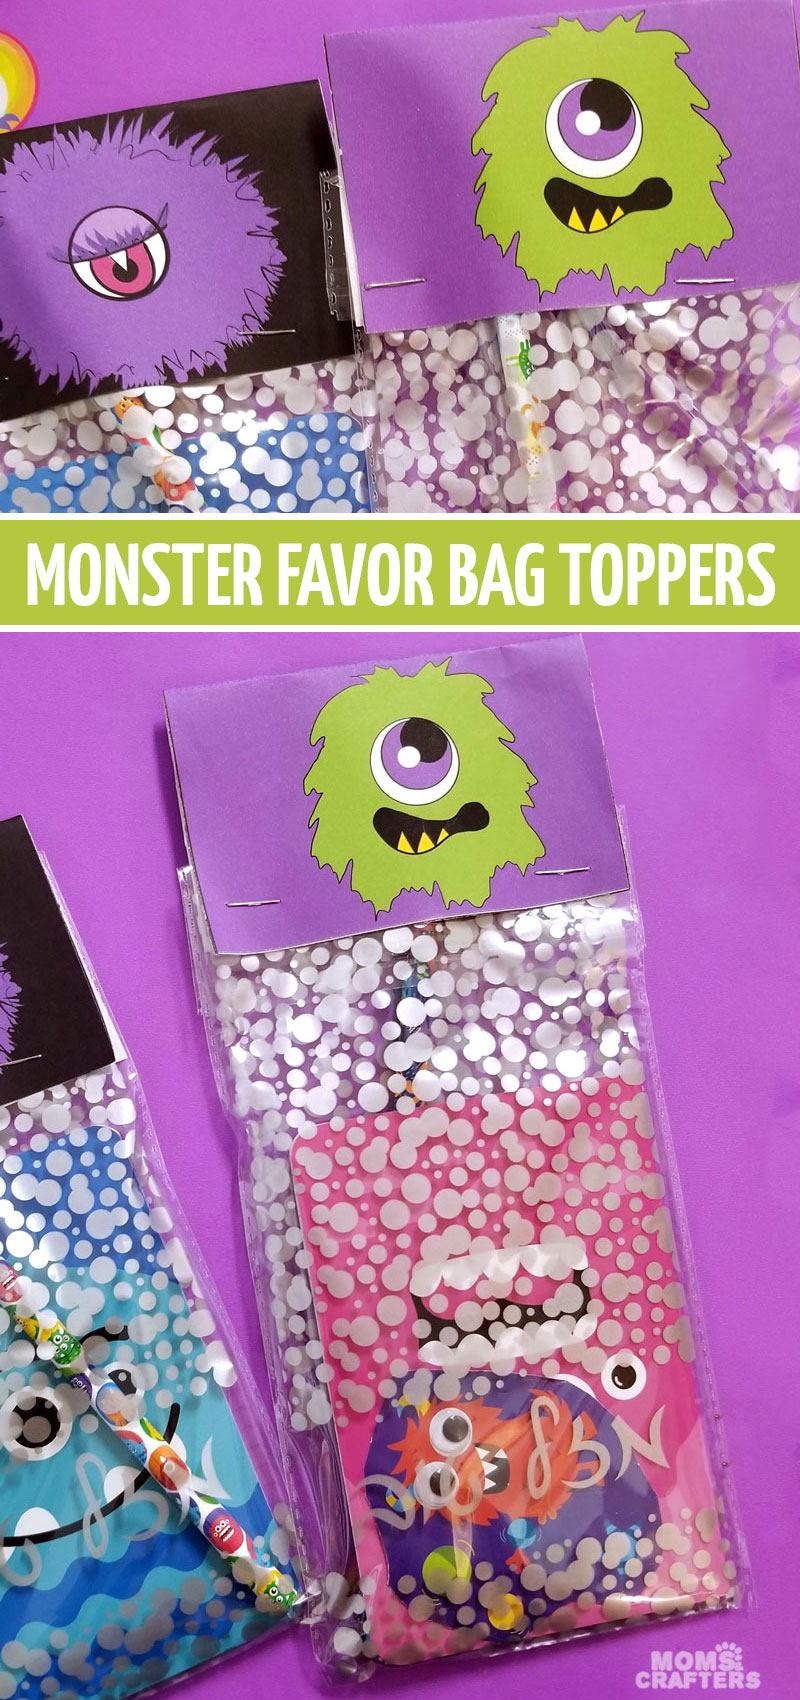 Click to download some monster party favors and bag toppers! This fun monster birthday party idea is so much fun for a third birthday or for a Halloween treat